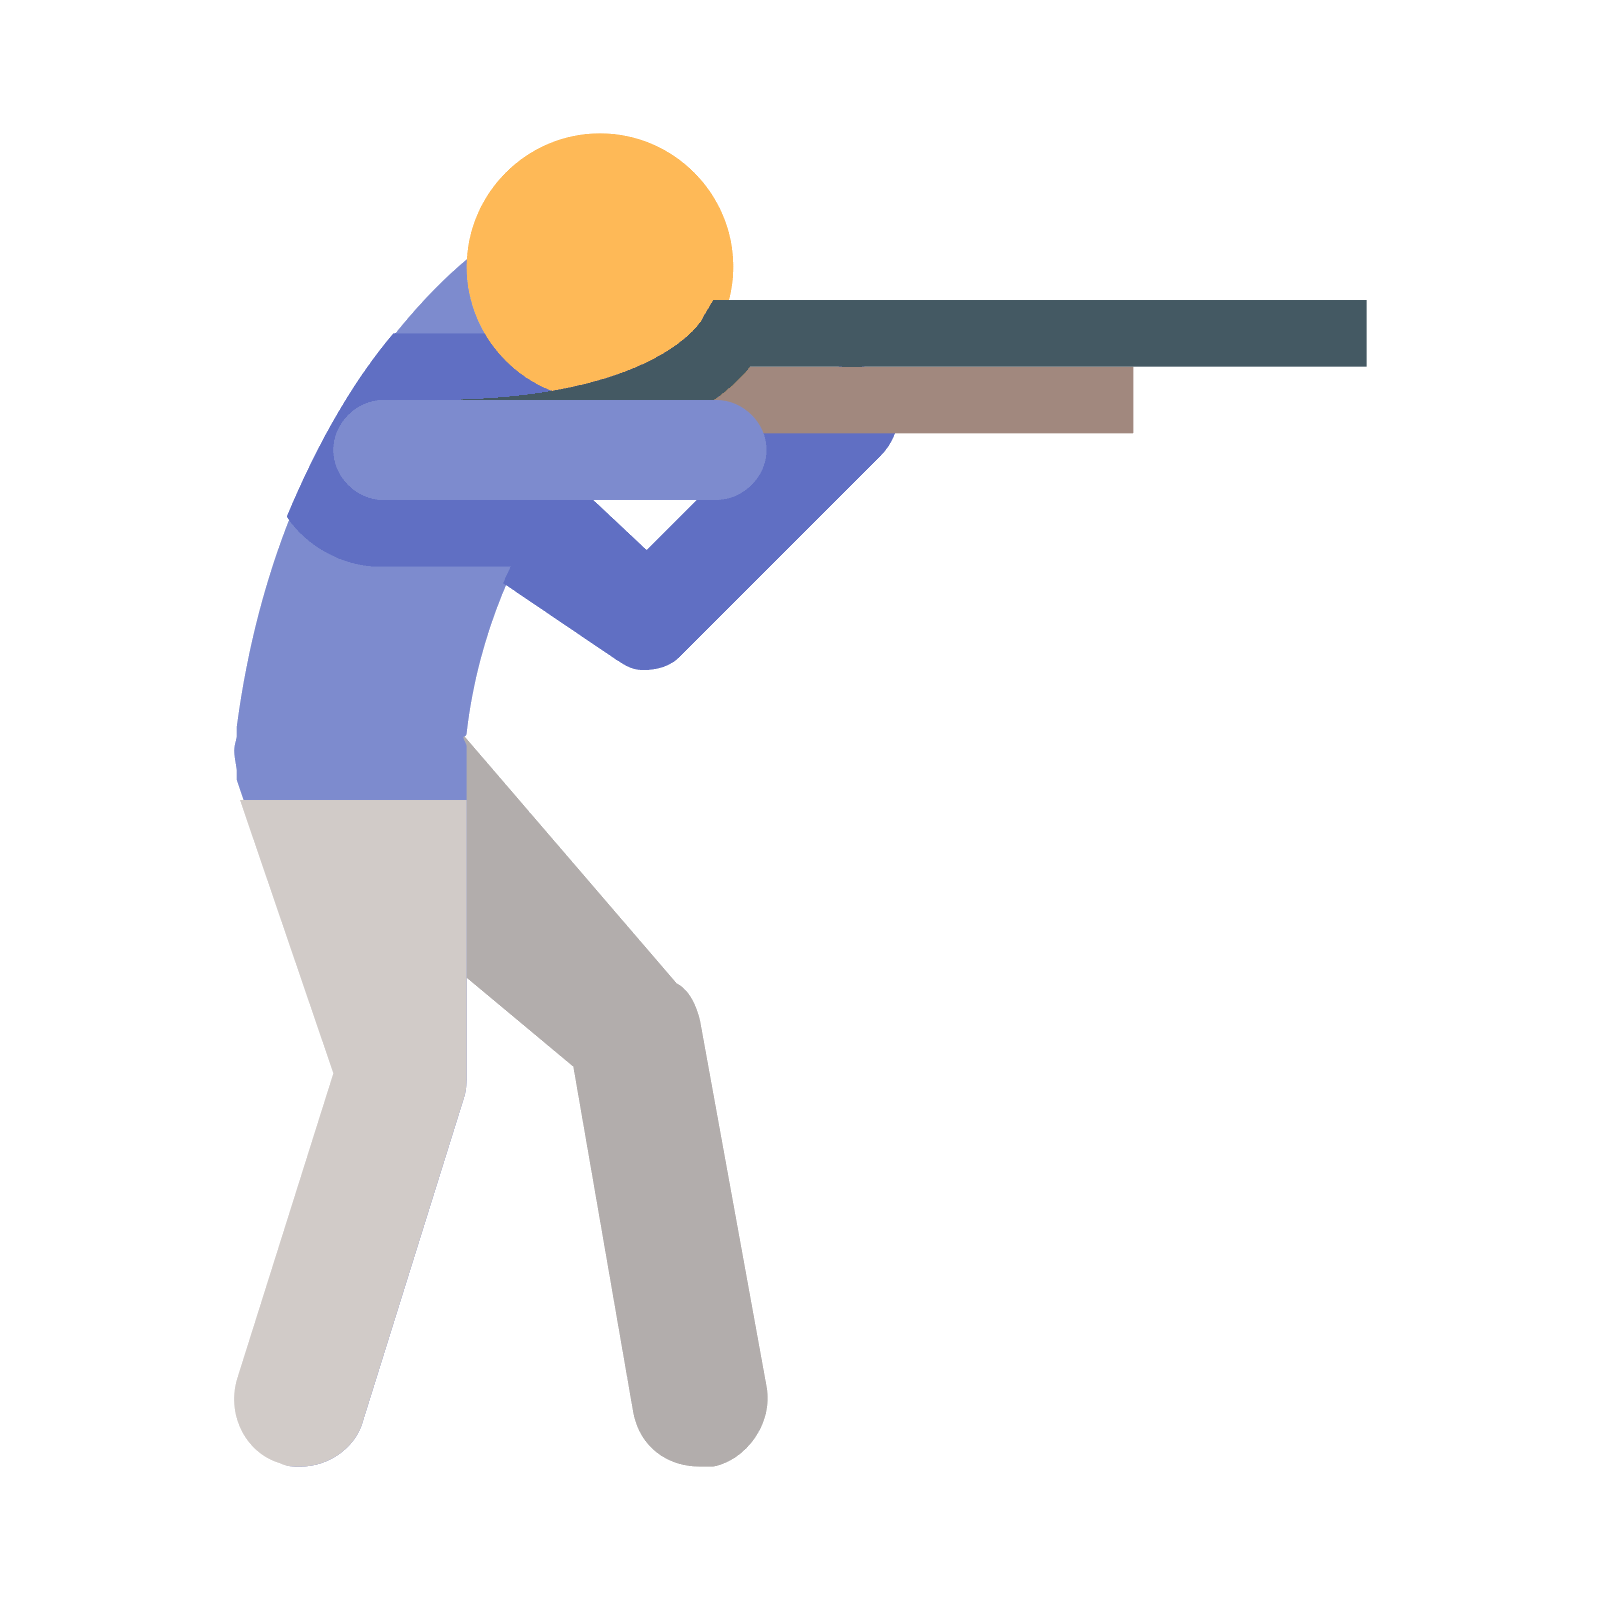 Vector shot ice. Shooting icon free download